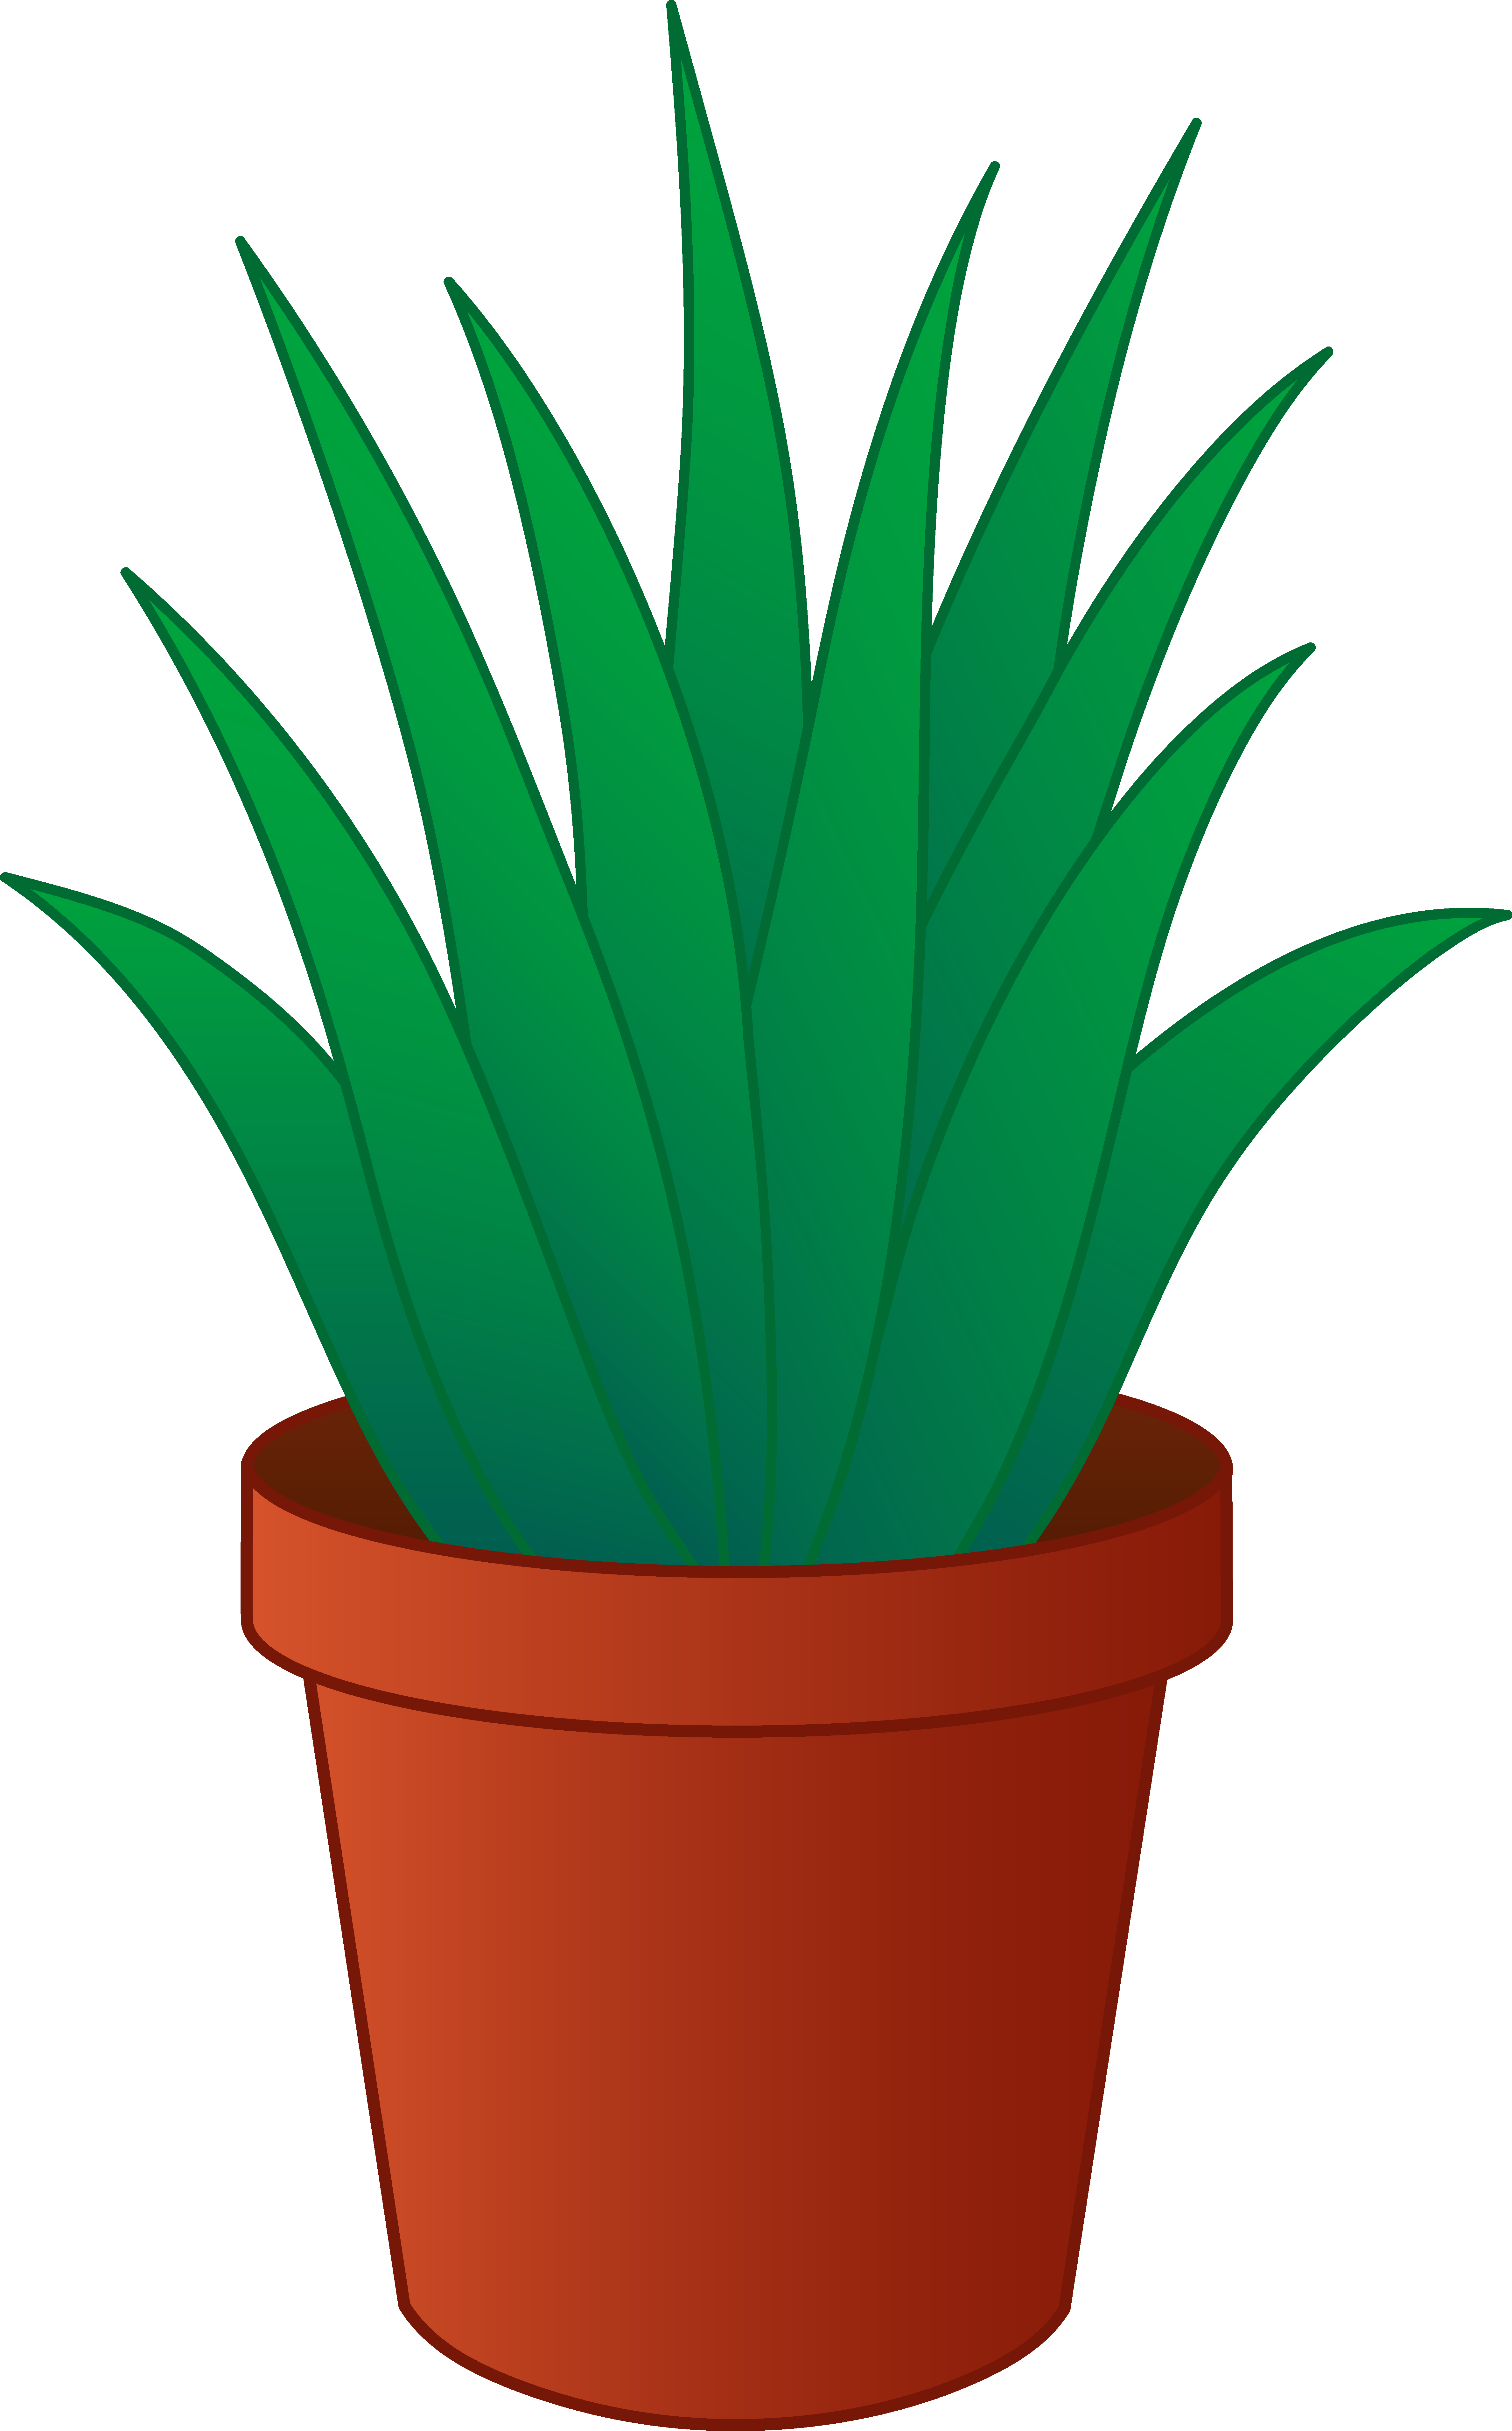 Plant clipart #6, Download drawings